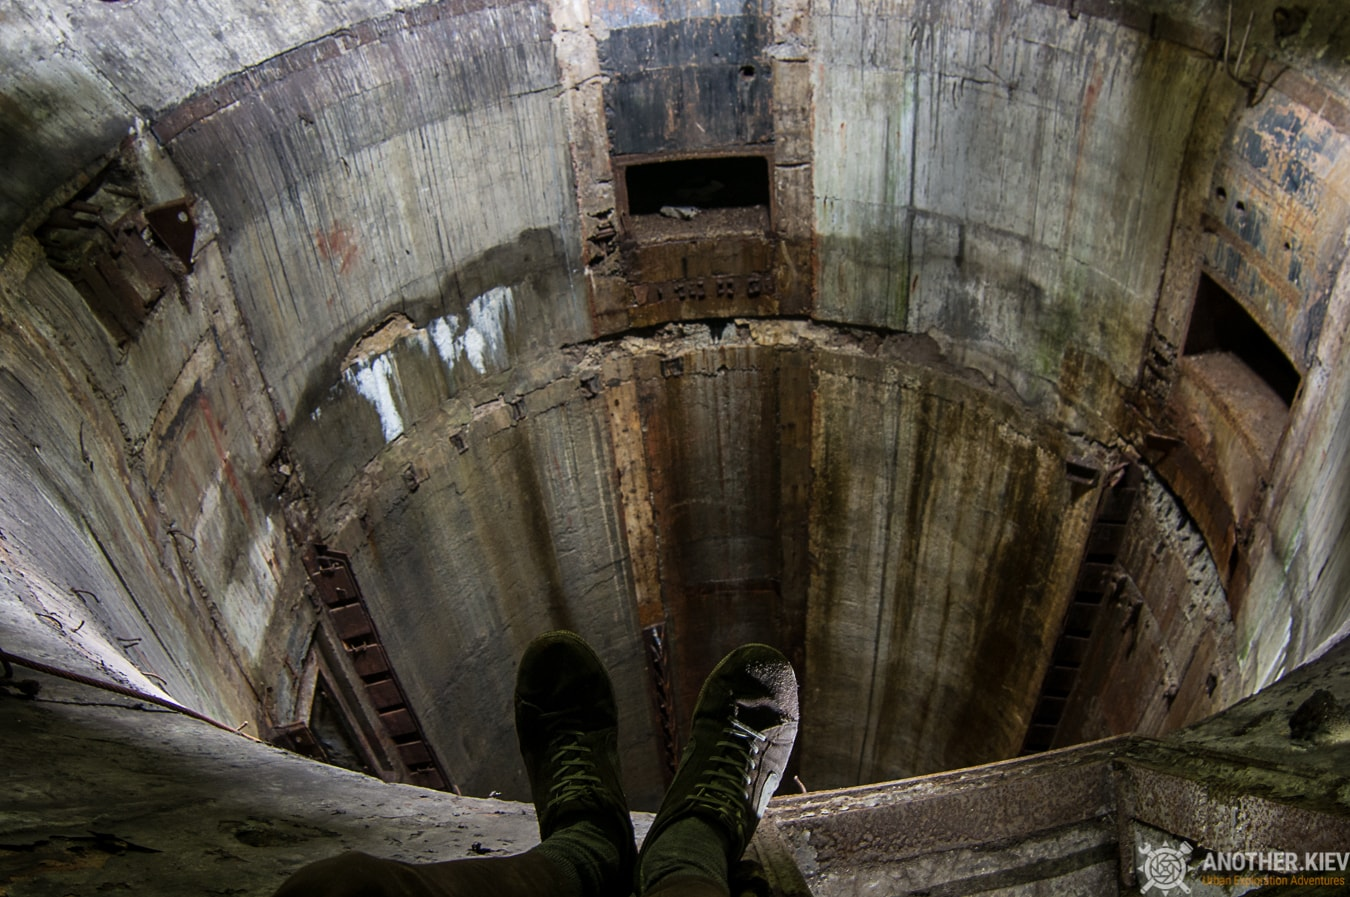 on the edge of abandoned missile shaft